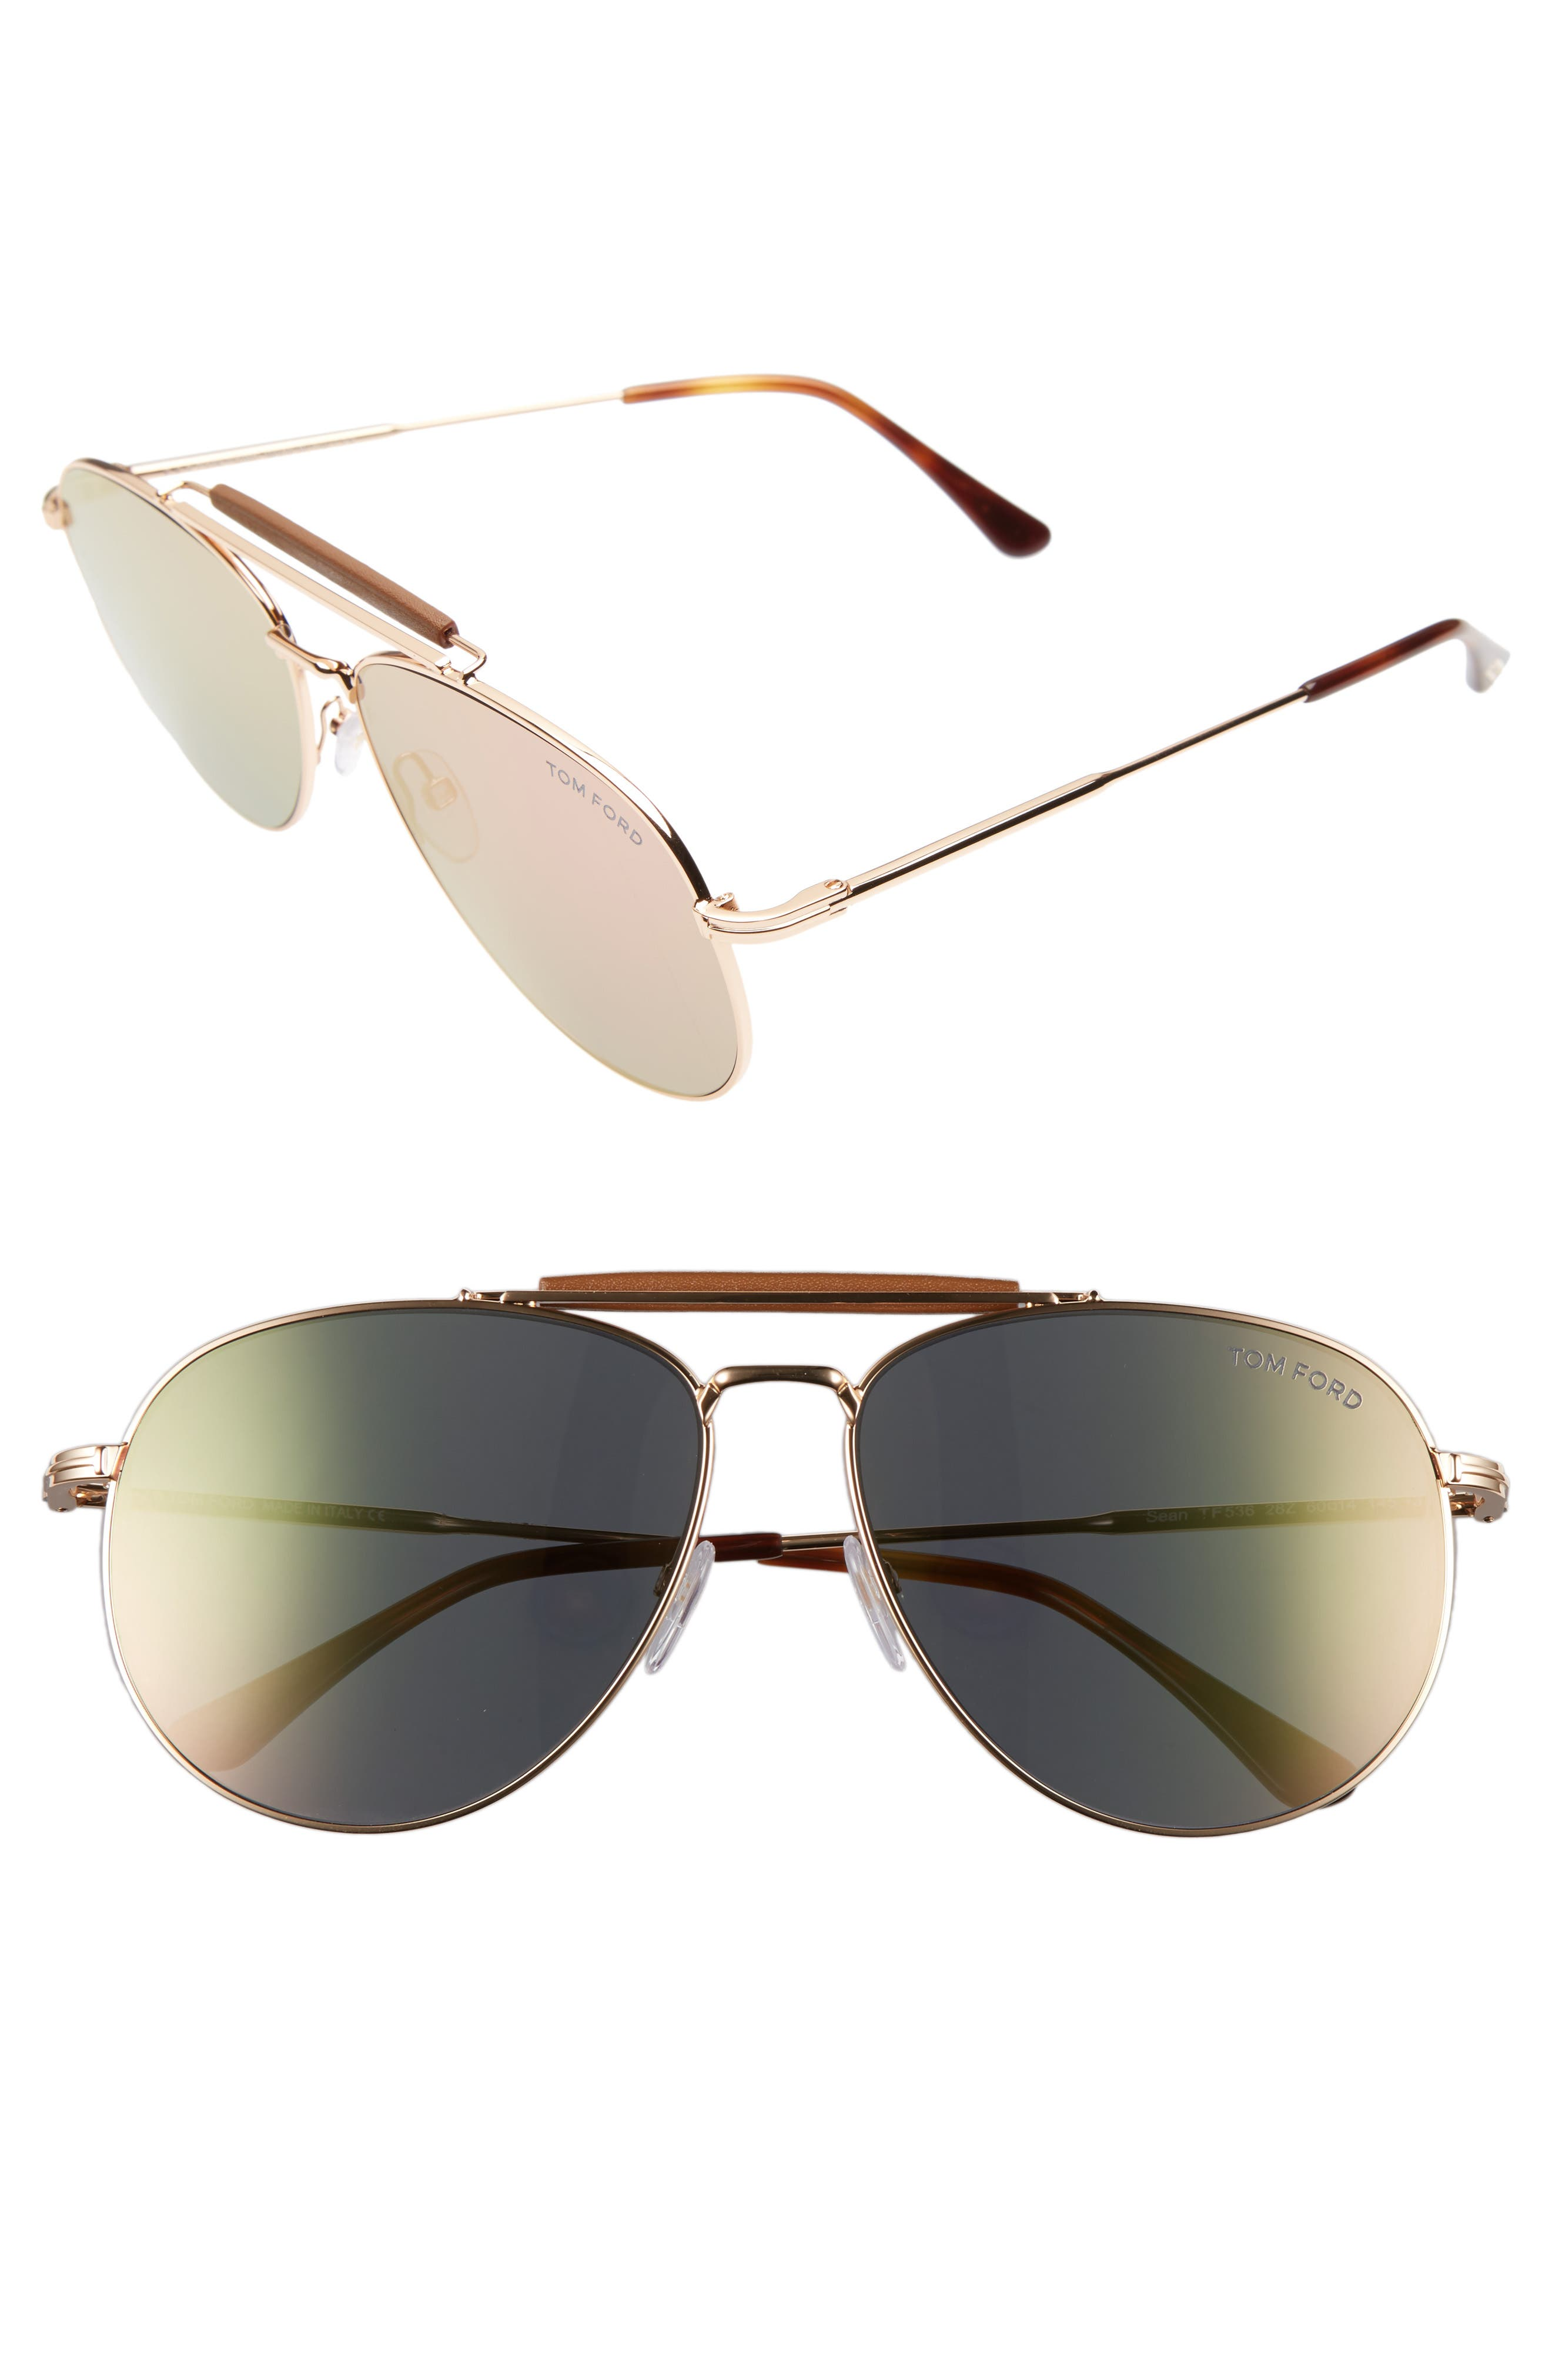 Alternate Image 1 Selected - Tom Ford Sean 60mm Aviator Sunglasses